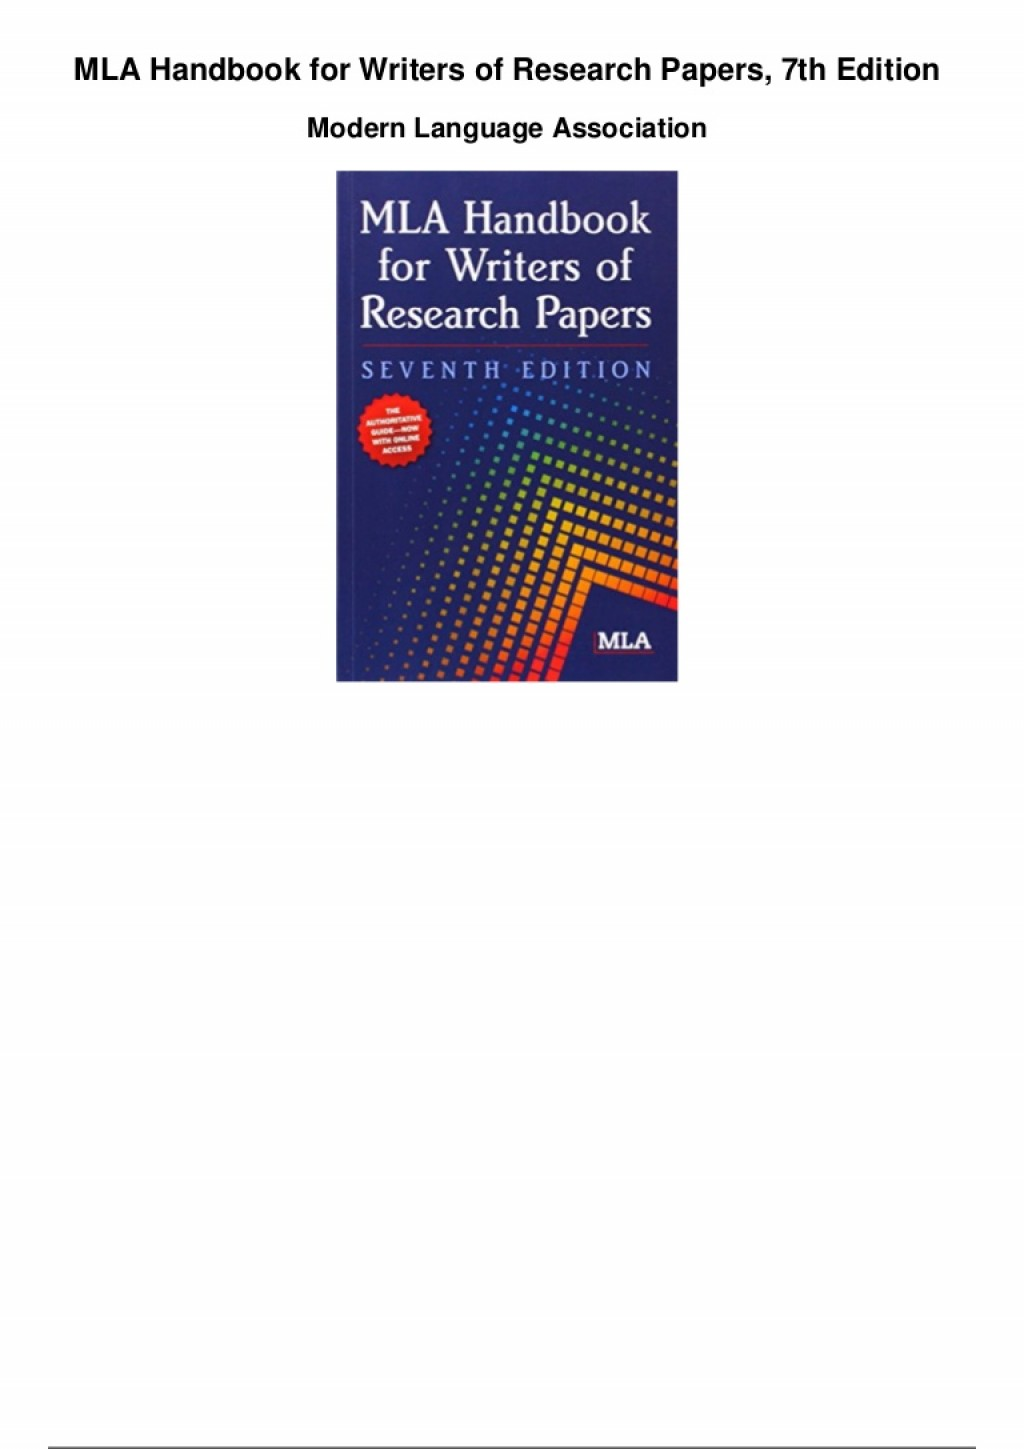 004 Research Paper Mla Handbook For Writers Of Papers 7th Edition Pdf Download Thumbnail Fearsome Free Large